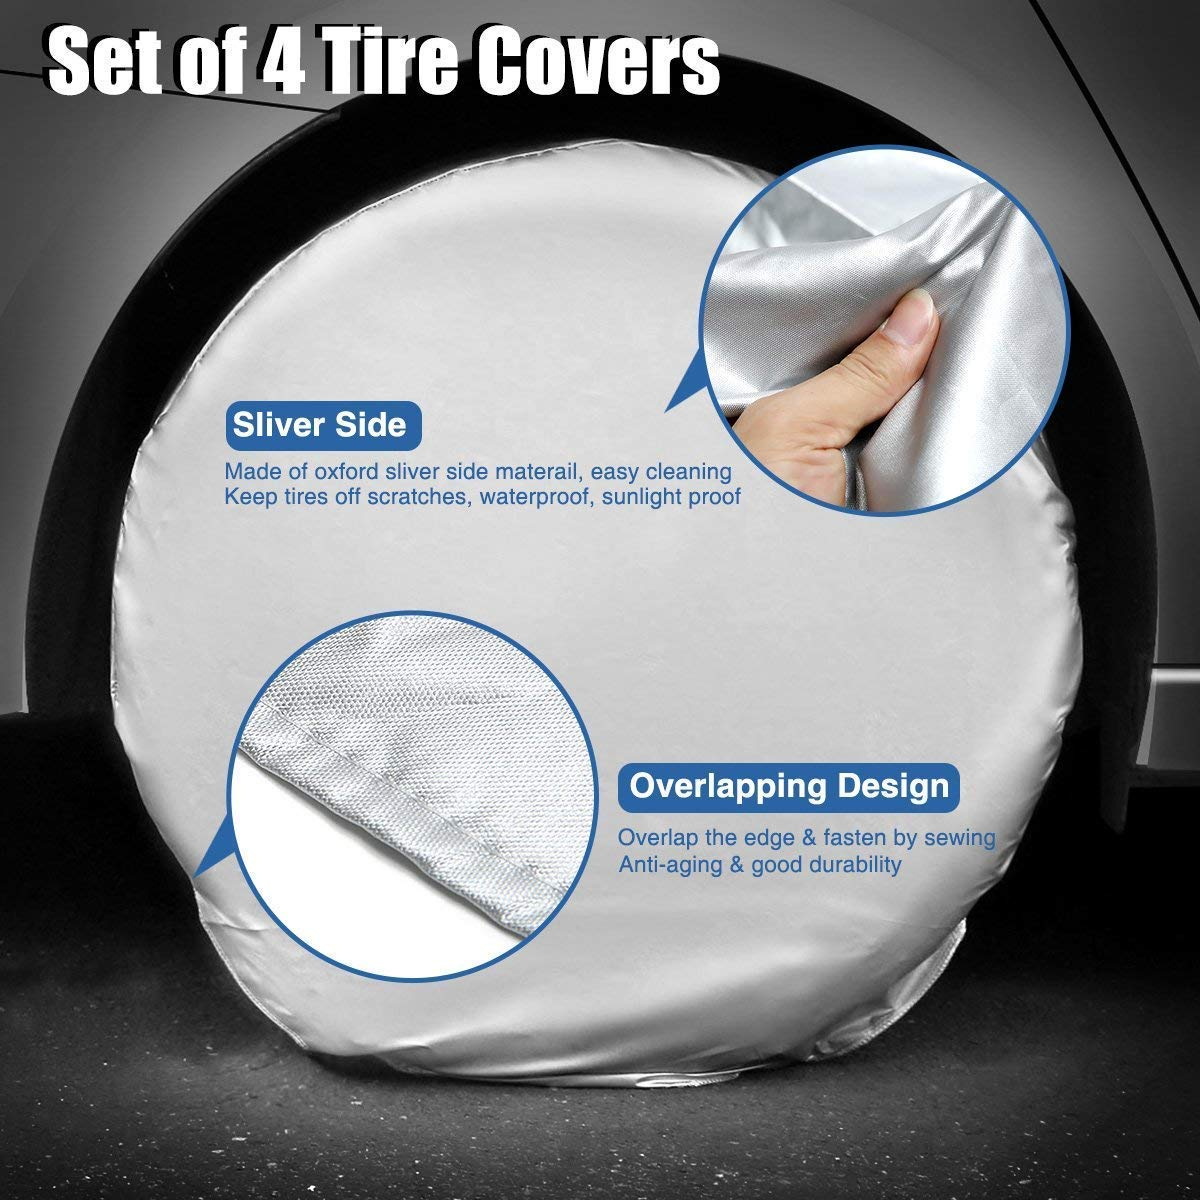 TOOGOO Car Tire Cover Waterproof Sunscreen Rv Trailer Oxford Cotton Tire Cover Suitable for 24-26 Tire Diameter